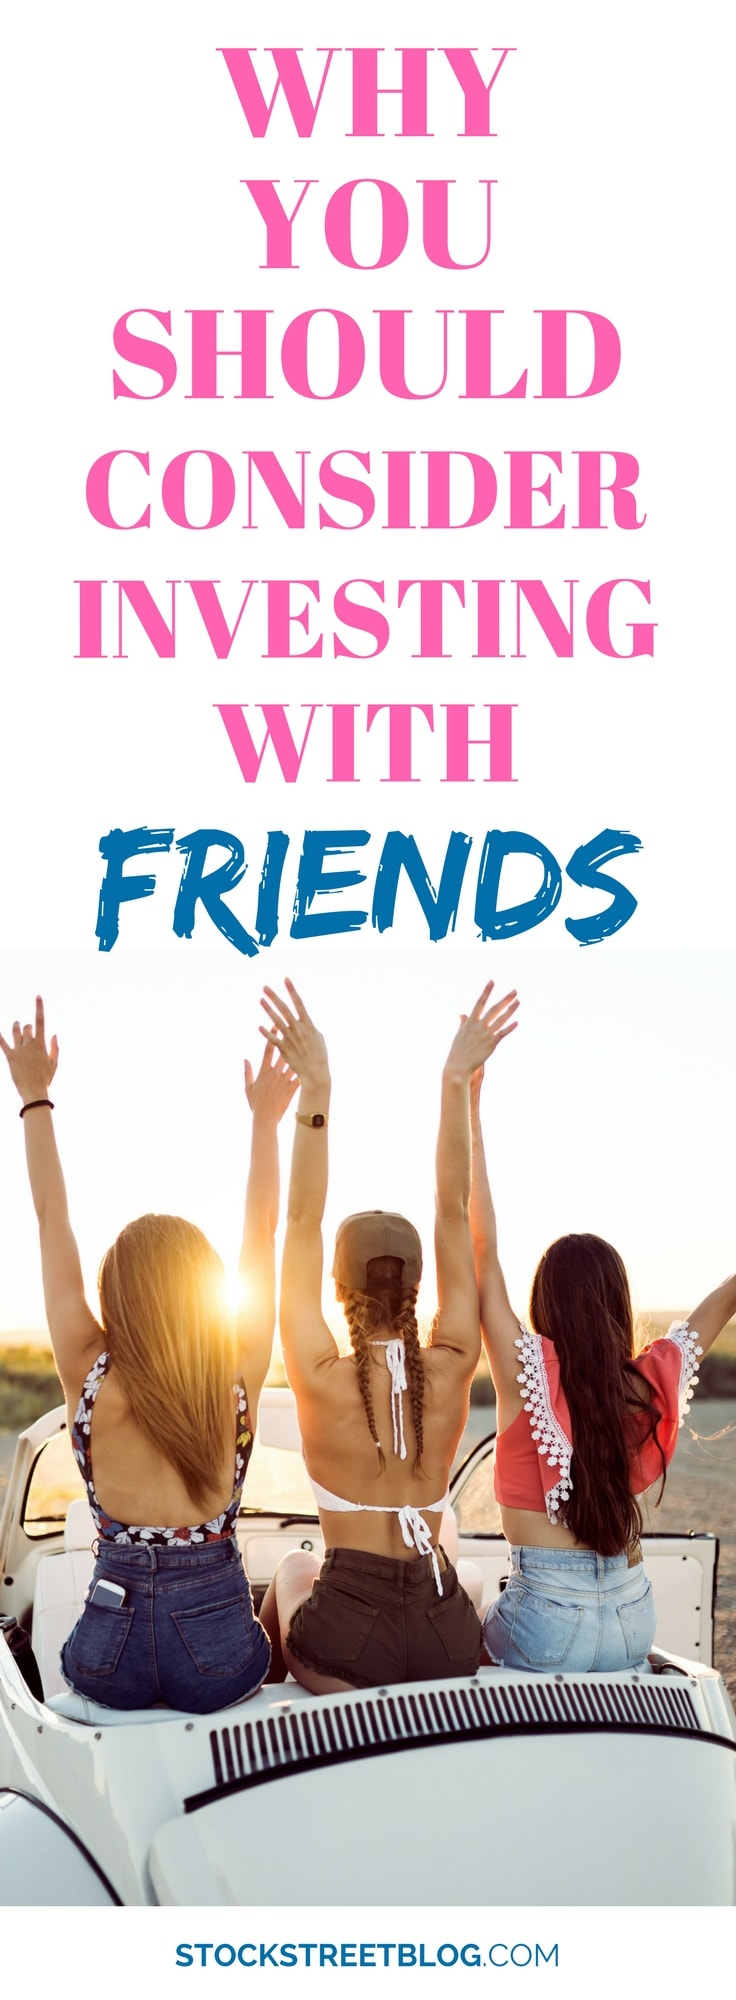 There is perhaps nothing better than #friendship! If you trust your #friends, and you enjoy spending time with your friends, maybe it is time you thought about learning to #invest with friends! Investing can be a lonesome journey when you do it on your own. When you do it with your friends, you may have more success! #money #personalfinance #stockmarket #realestate #financialfreedom